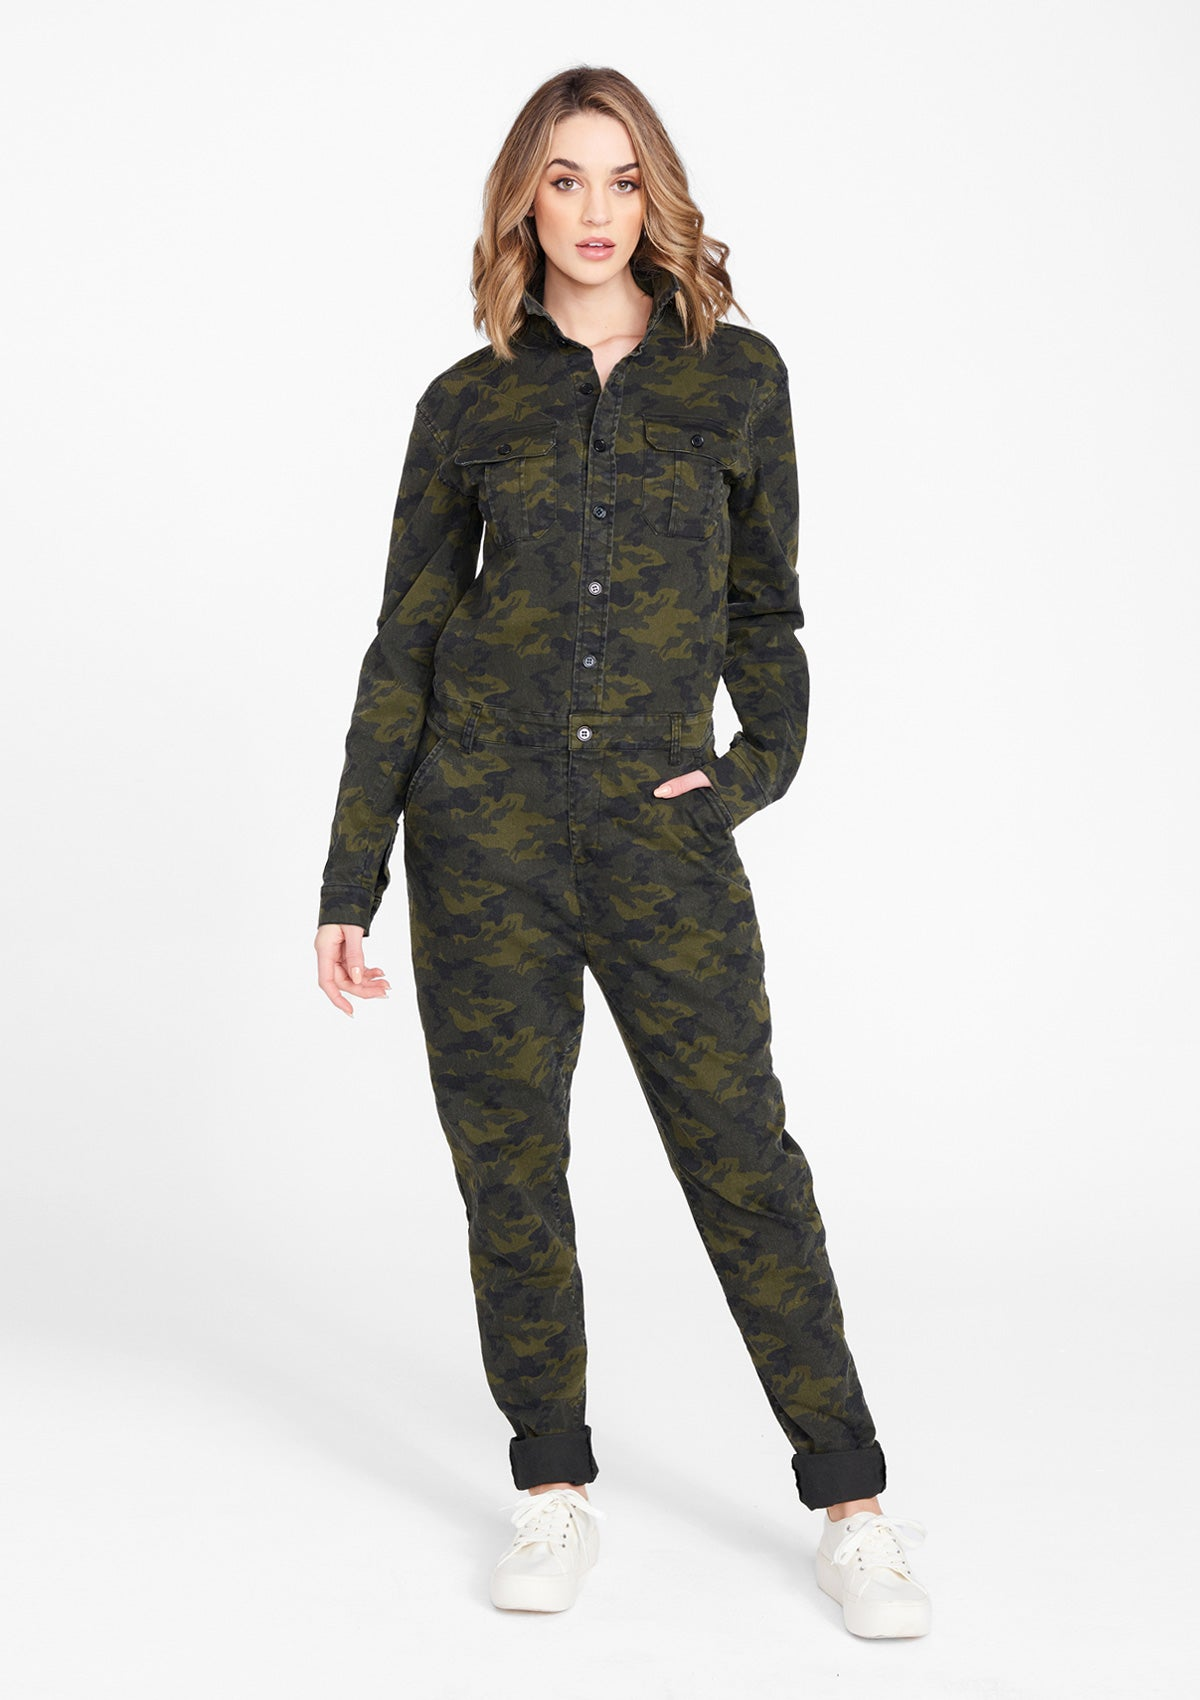 Alloy Apparel Tall Limited Edition Cargo Jumpsuit for Women in Camo Size L   Cotton